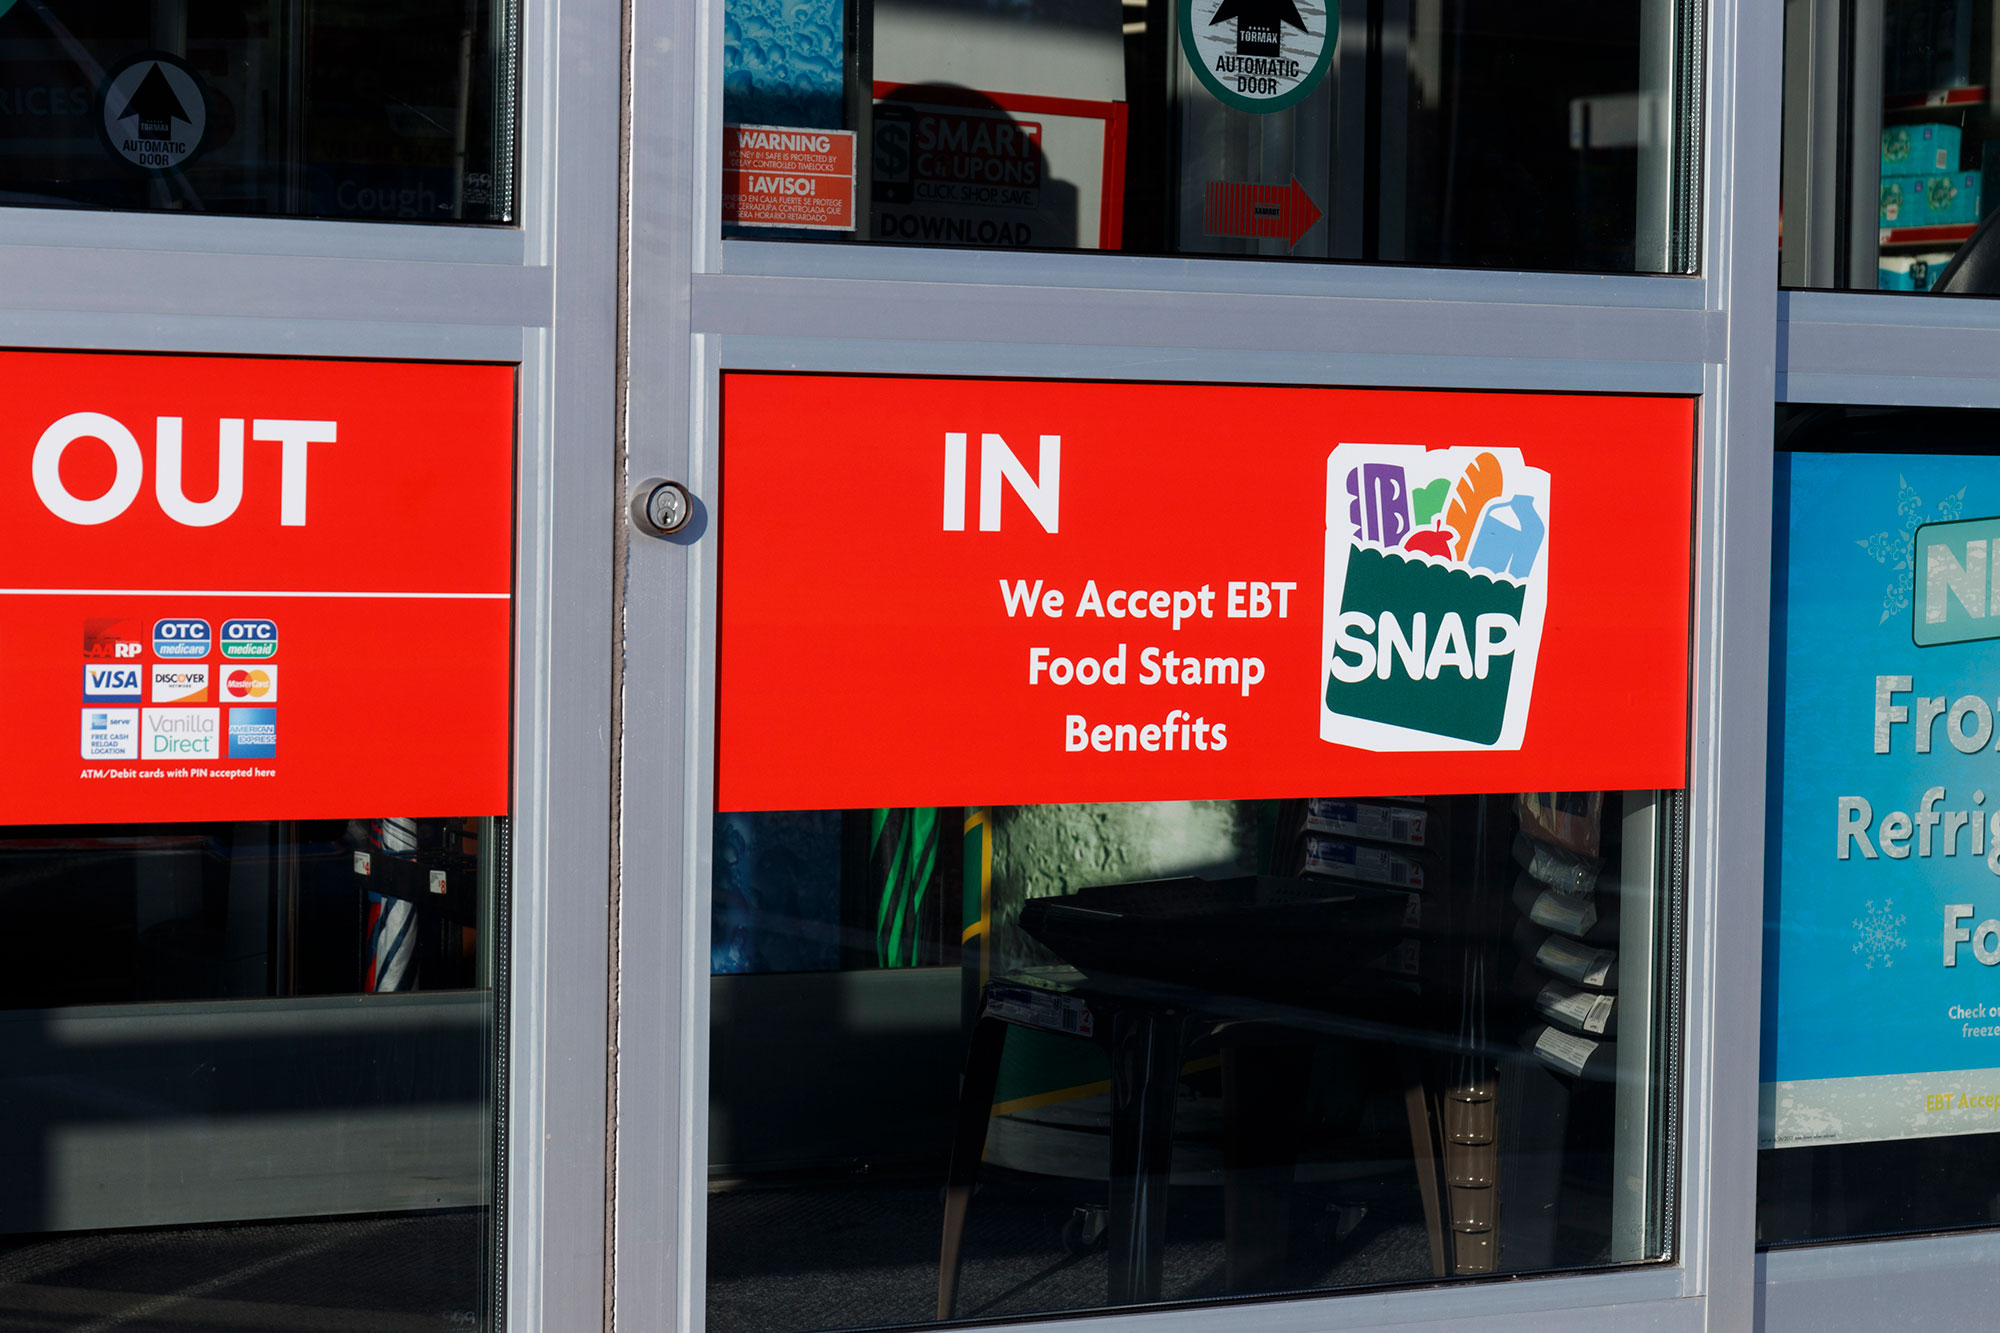 SNAP and EBT Accepted here sign. SNAP provides nutrition benefits to supplement the food budget of disadvantaged families